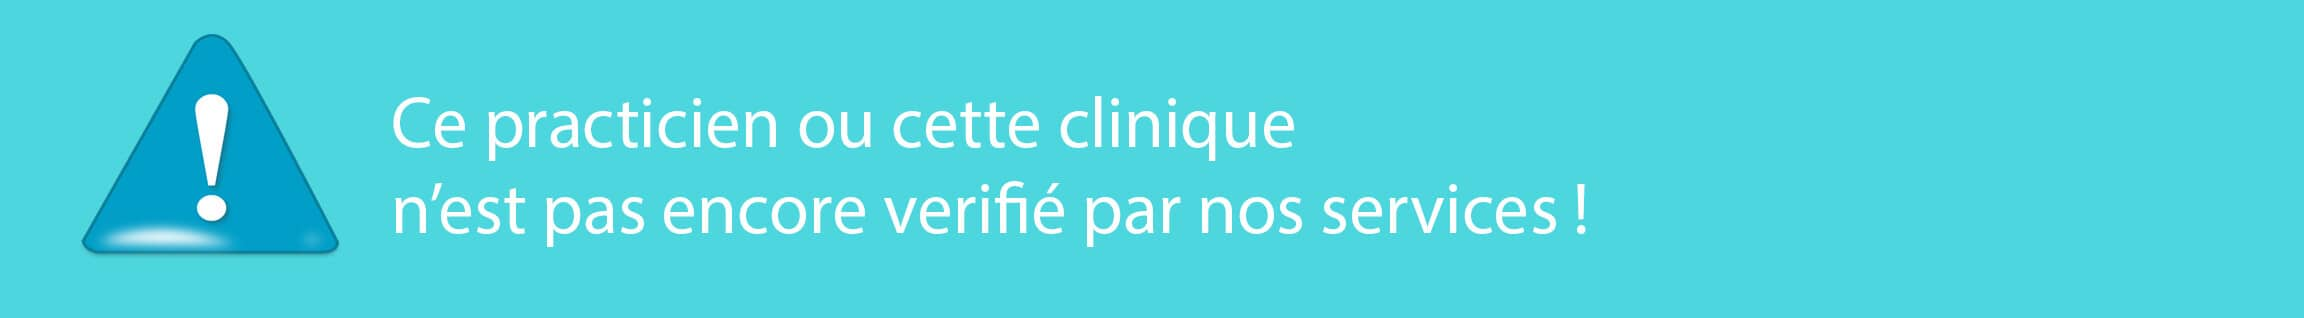 Clinique DELC